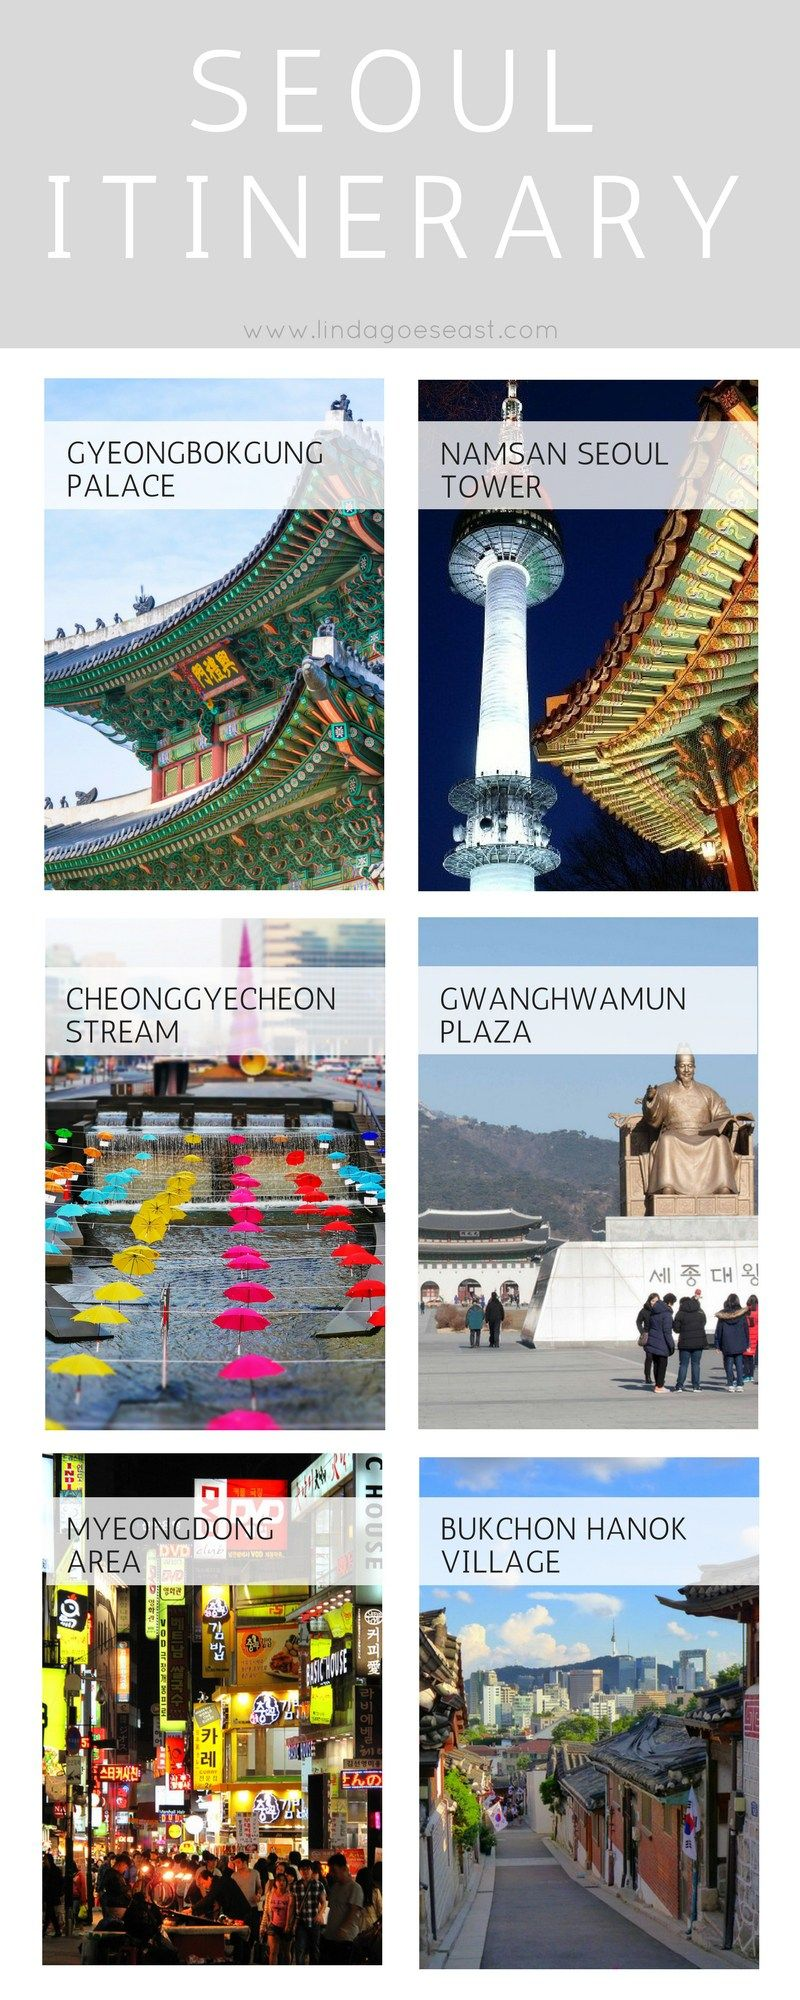 How To See Seoul In 48 Hours See All Of Seoul In 2 Days Korea Travel Seoul Travel South Korea Travel